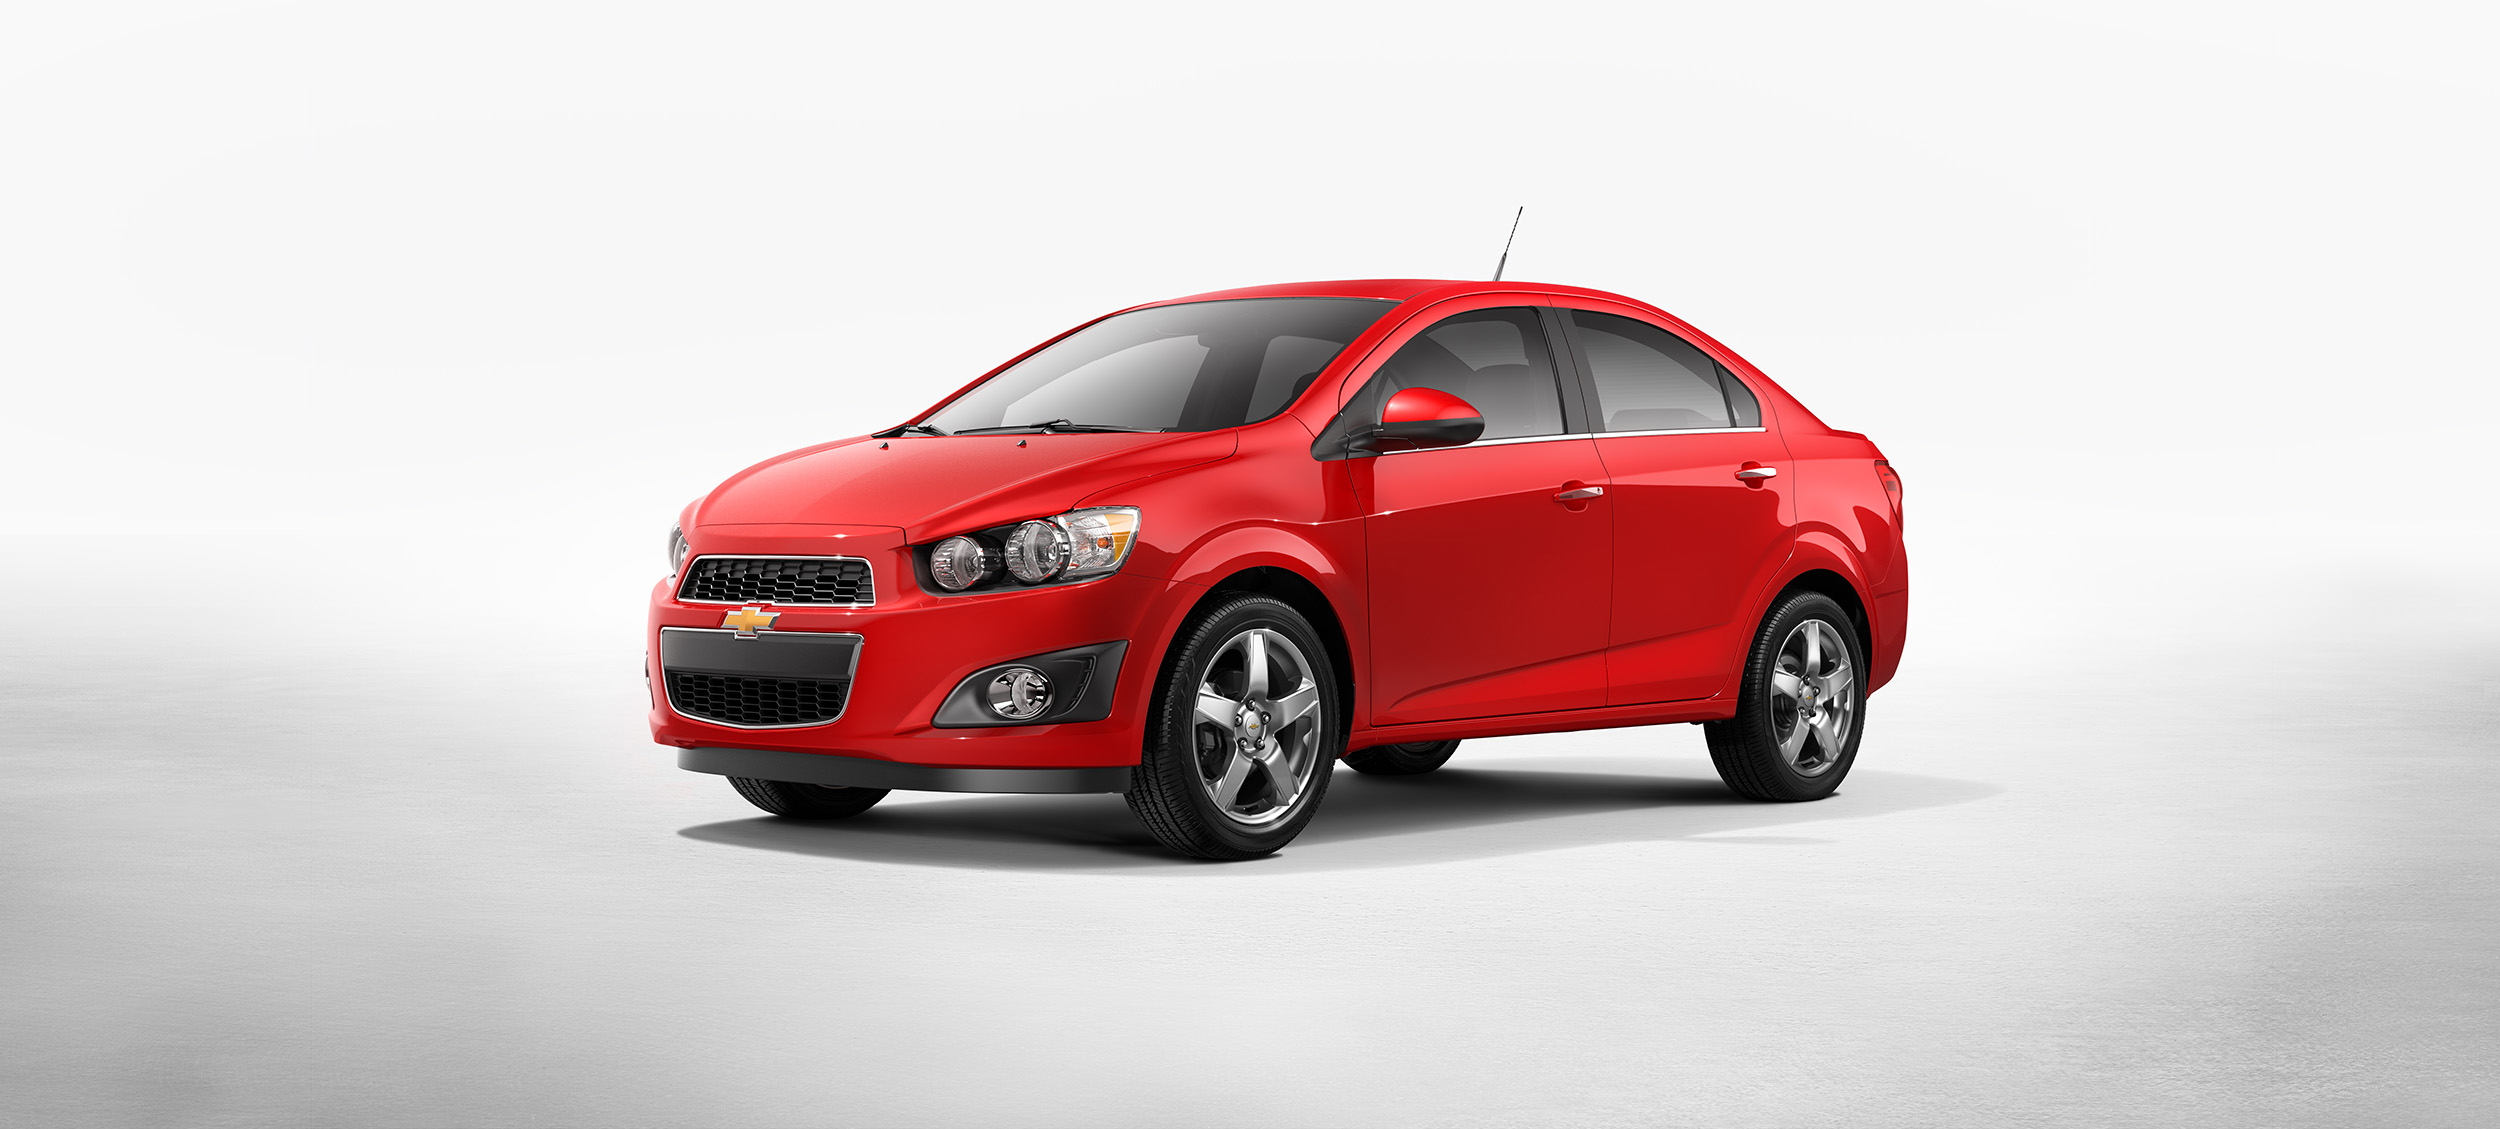 Chevrolet Sonic Owners Manual: Service Publications Ordering Information